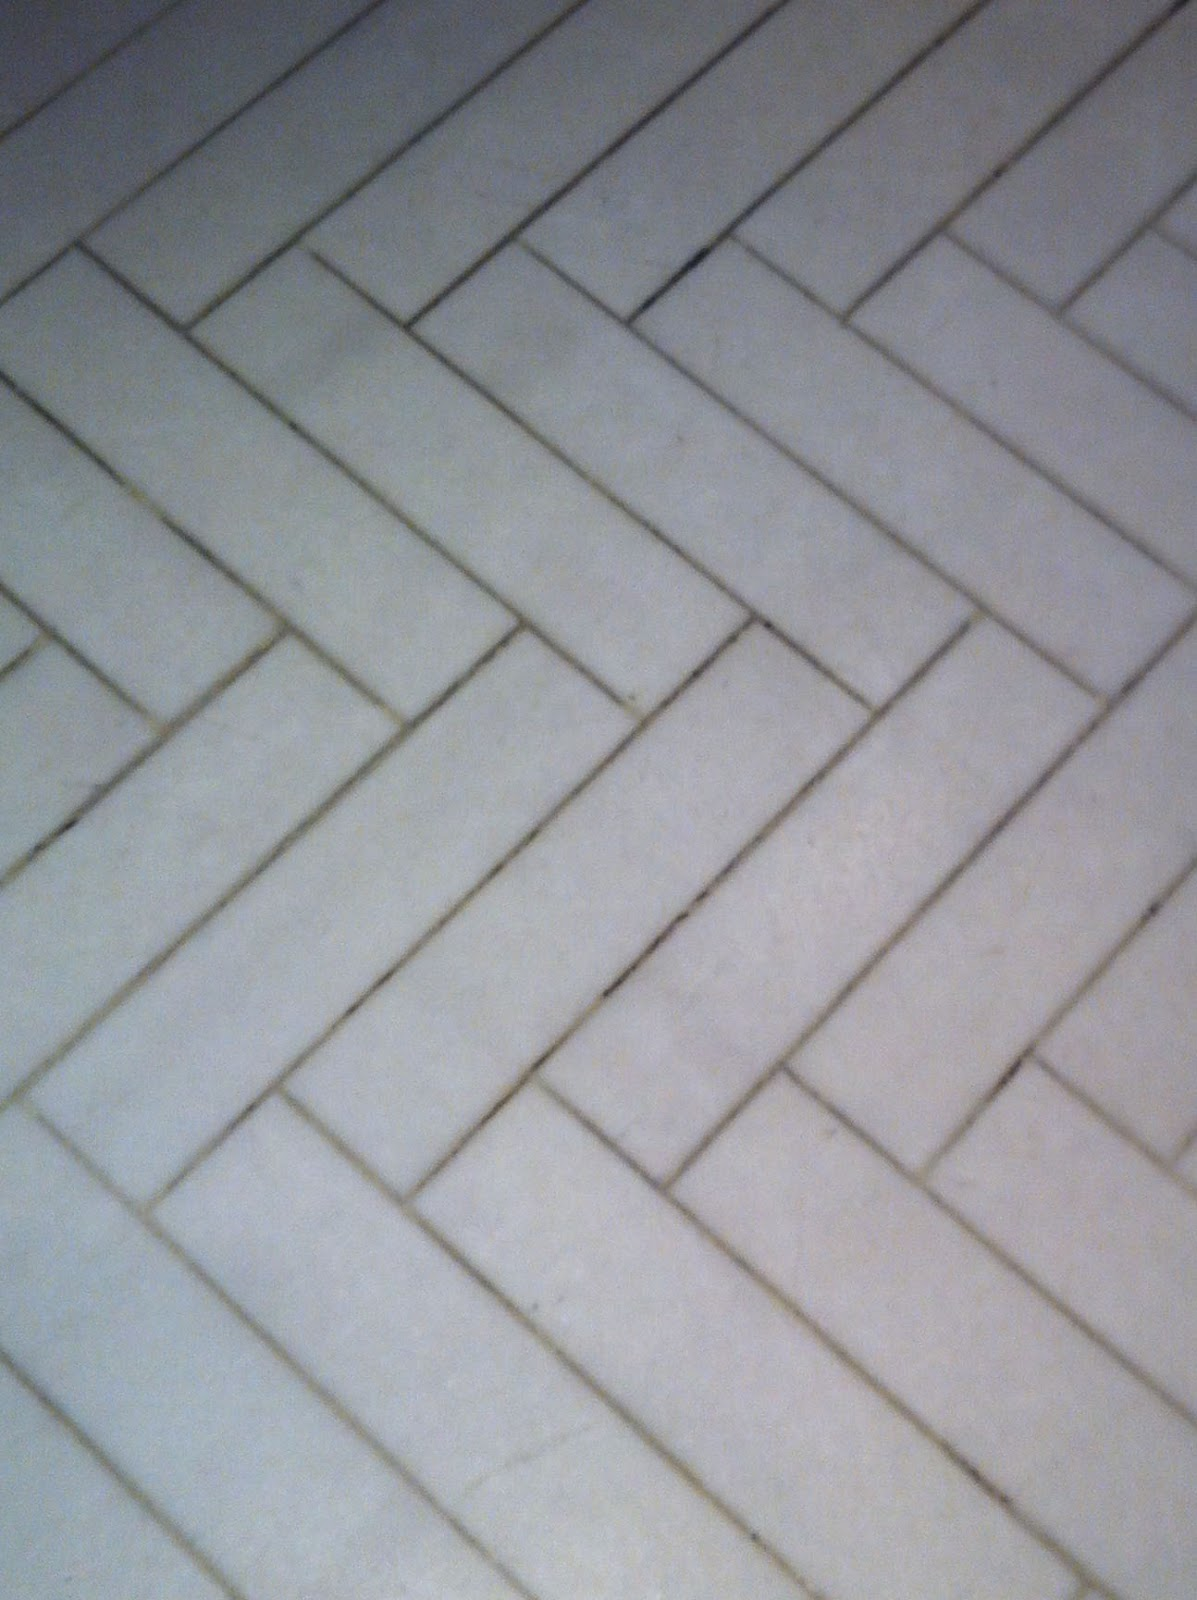 Herringbone Pattern Tile Floor